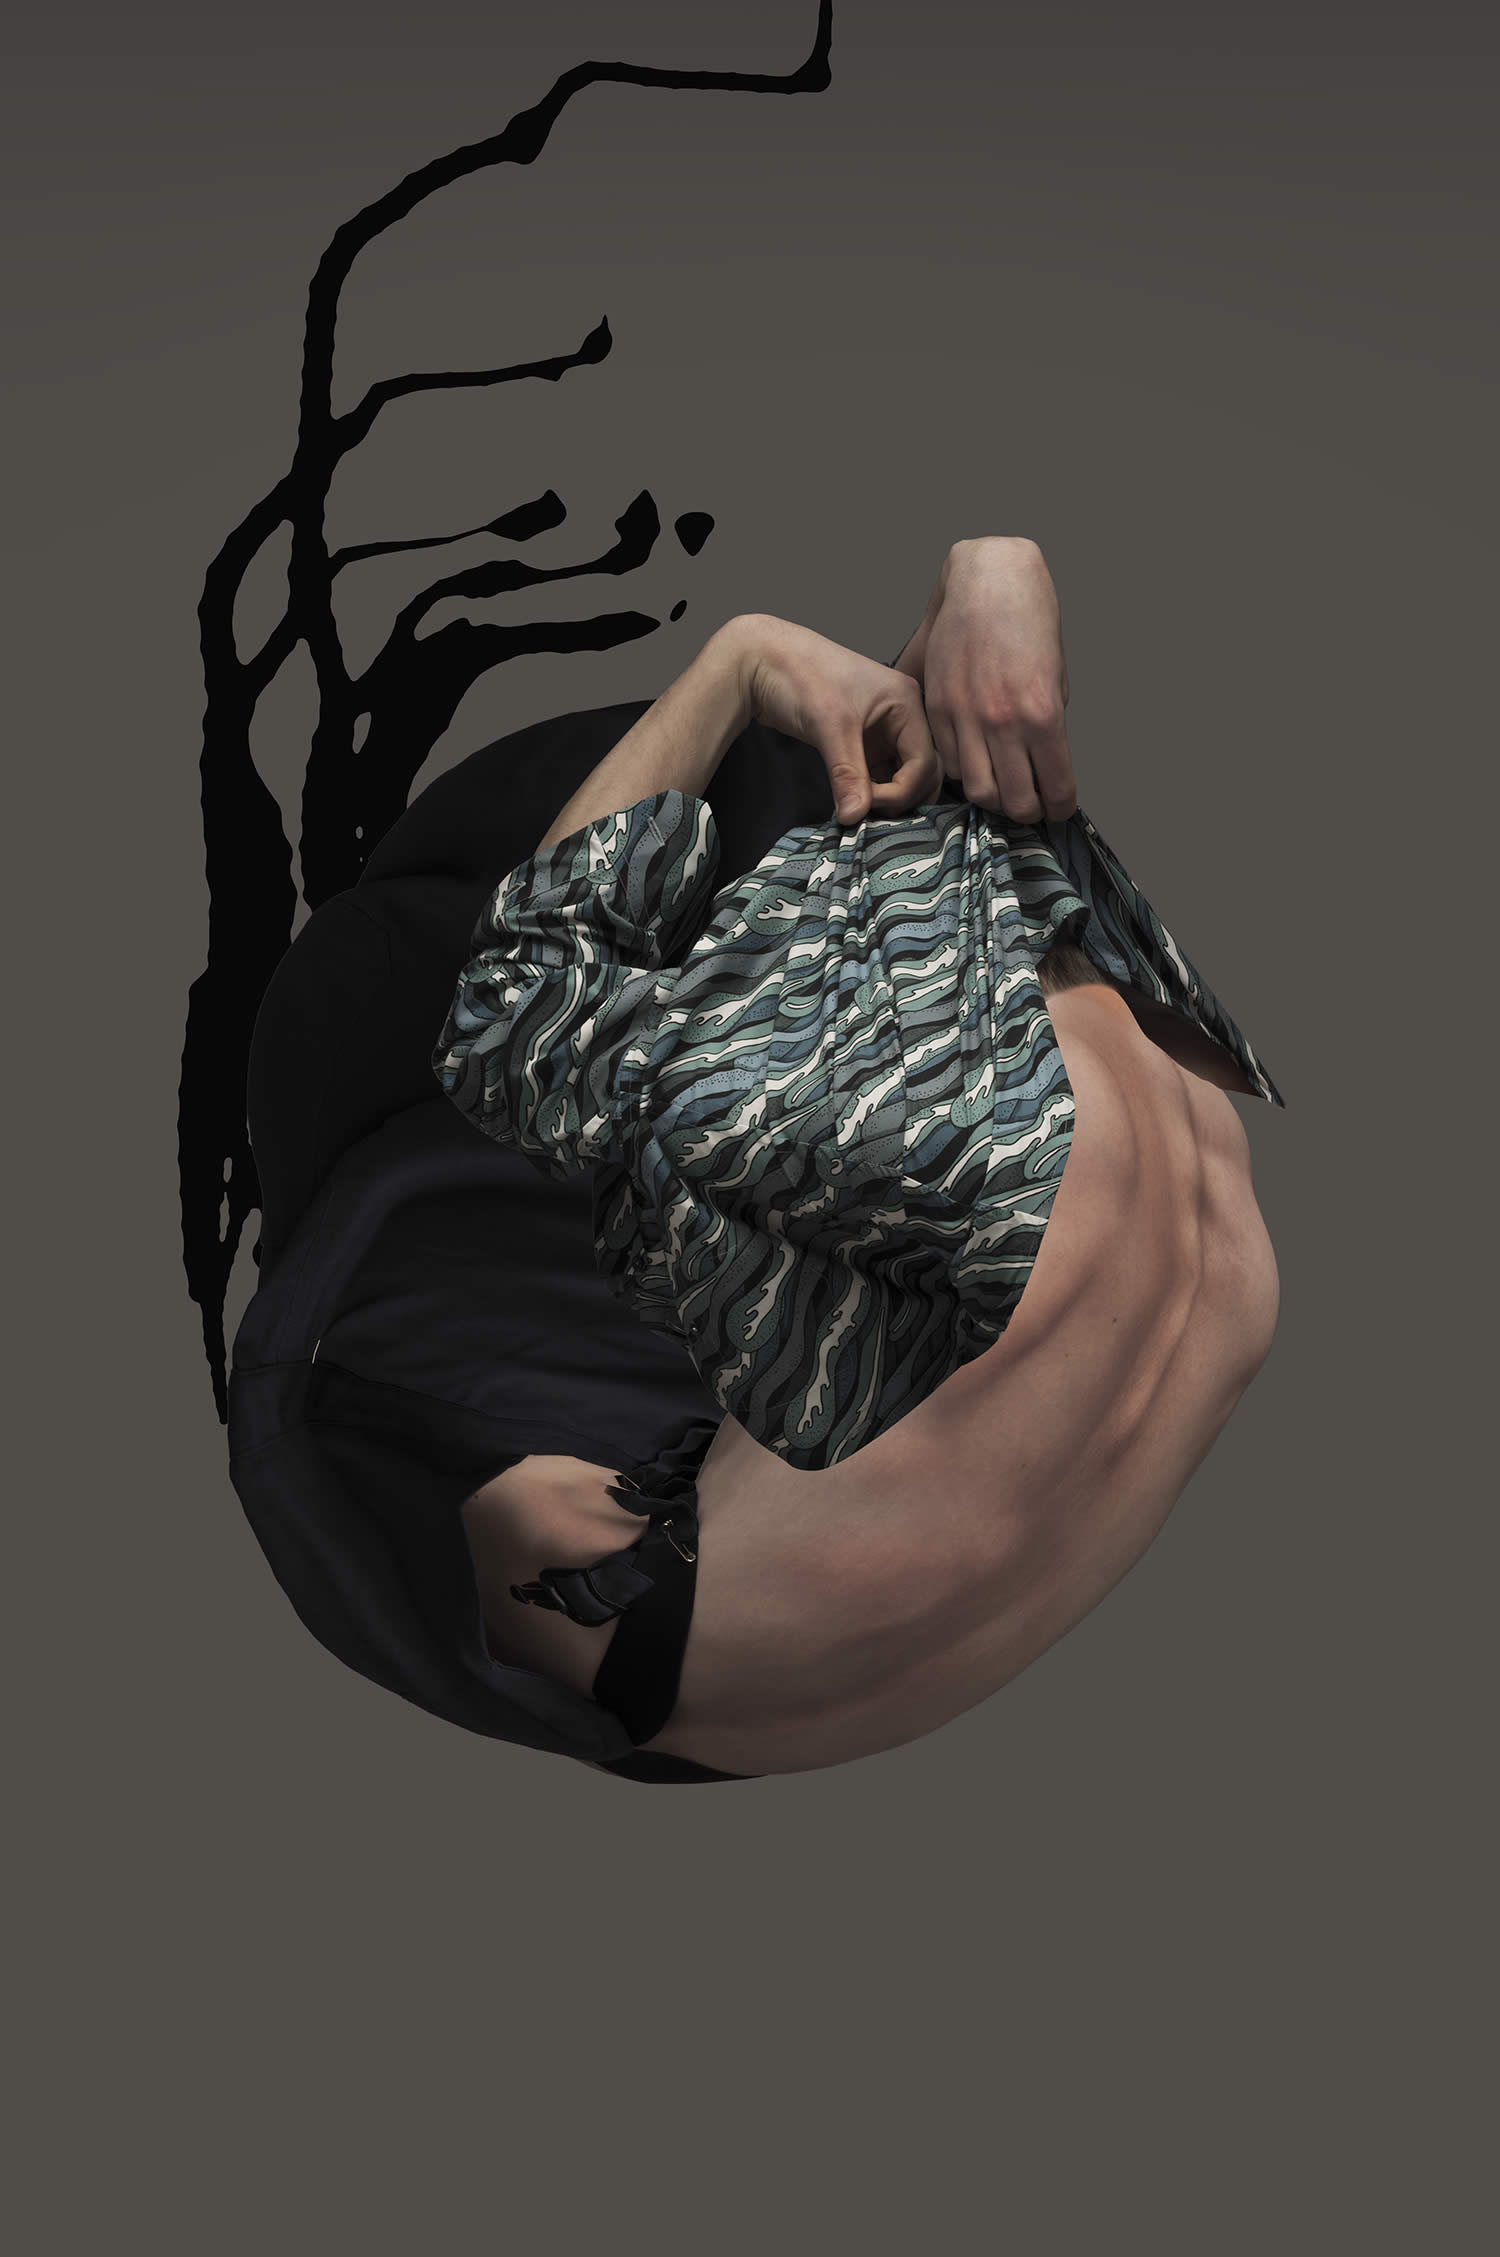 body contorted into a ball, abstract art